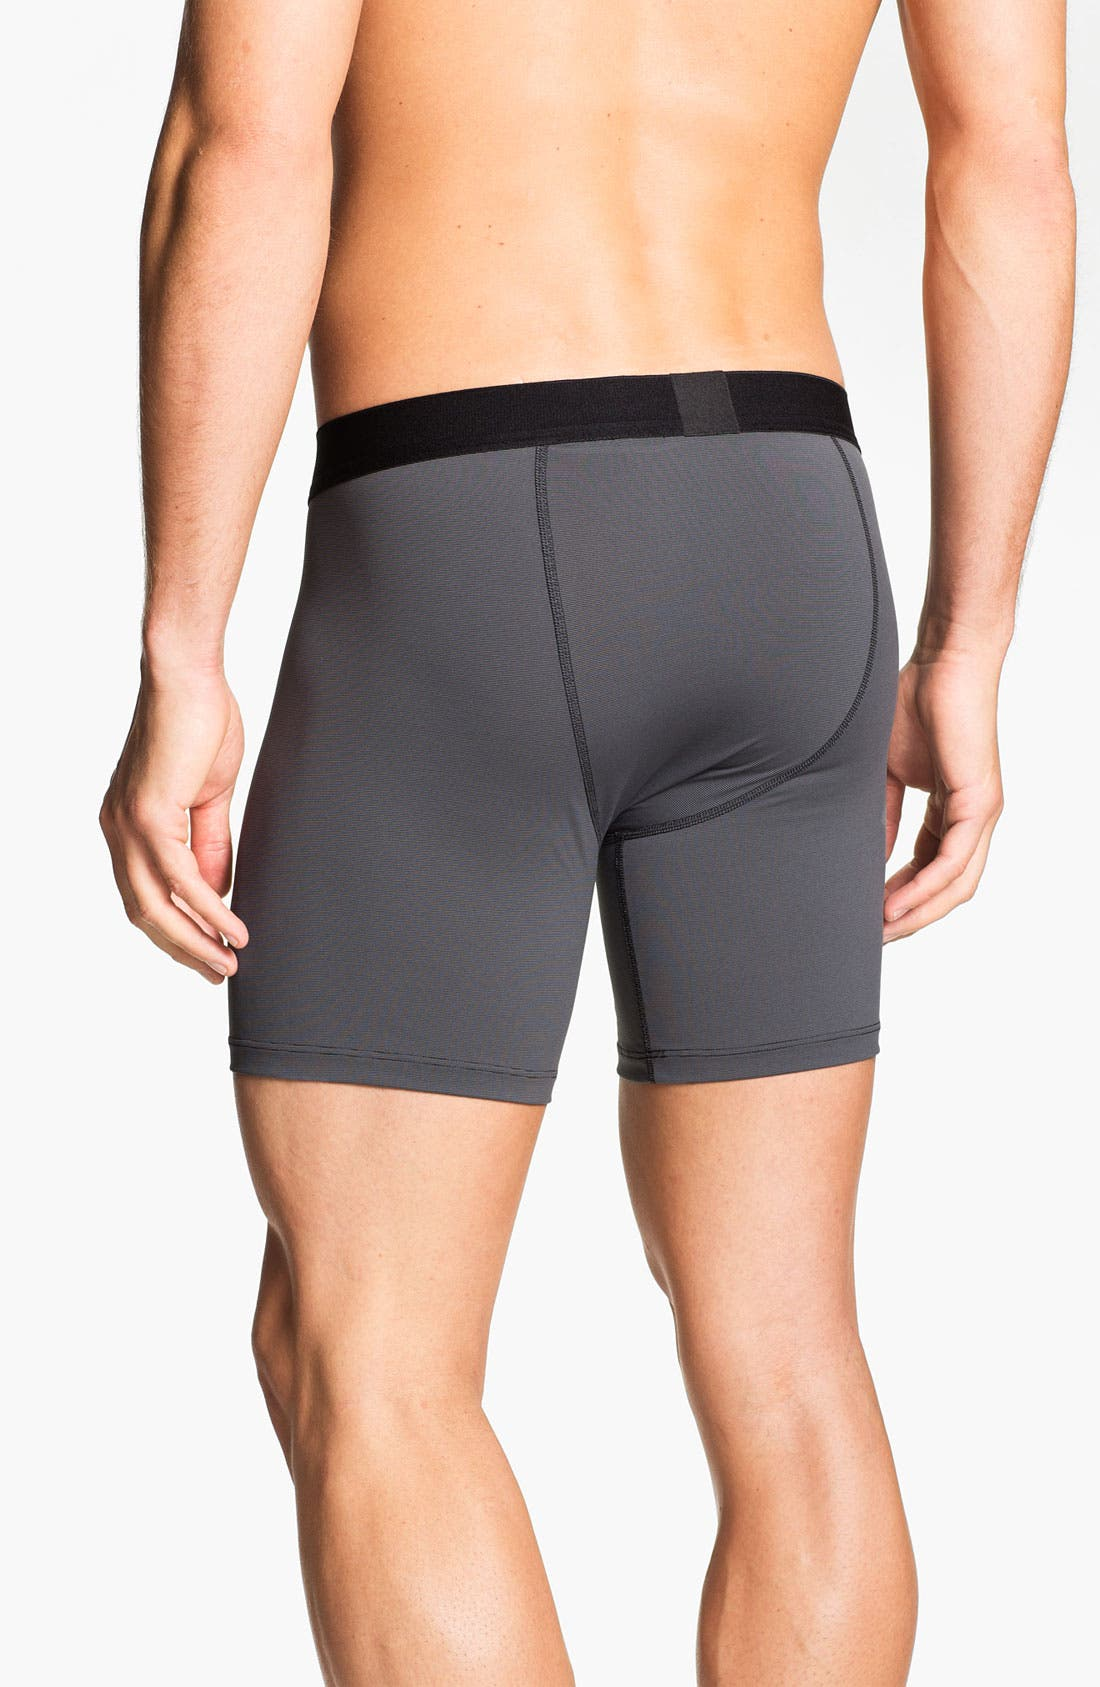 Alternate Image 2  - Arc'teryx 'Phase SL' Boxer Briefs (Online Exclusive)